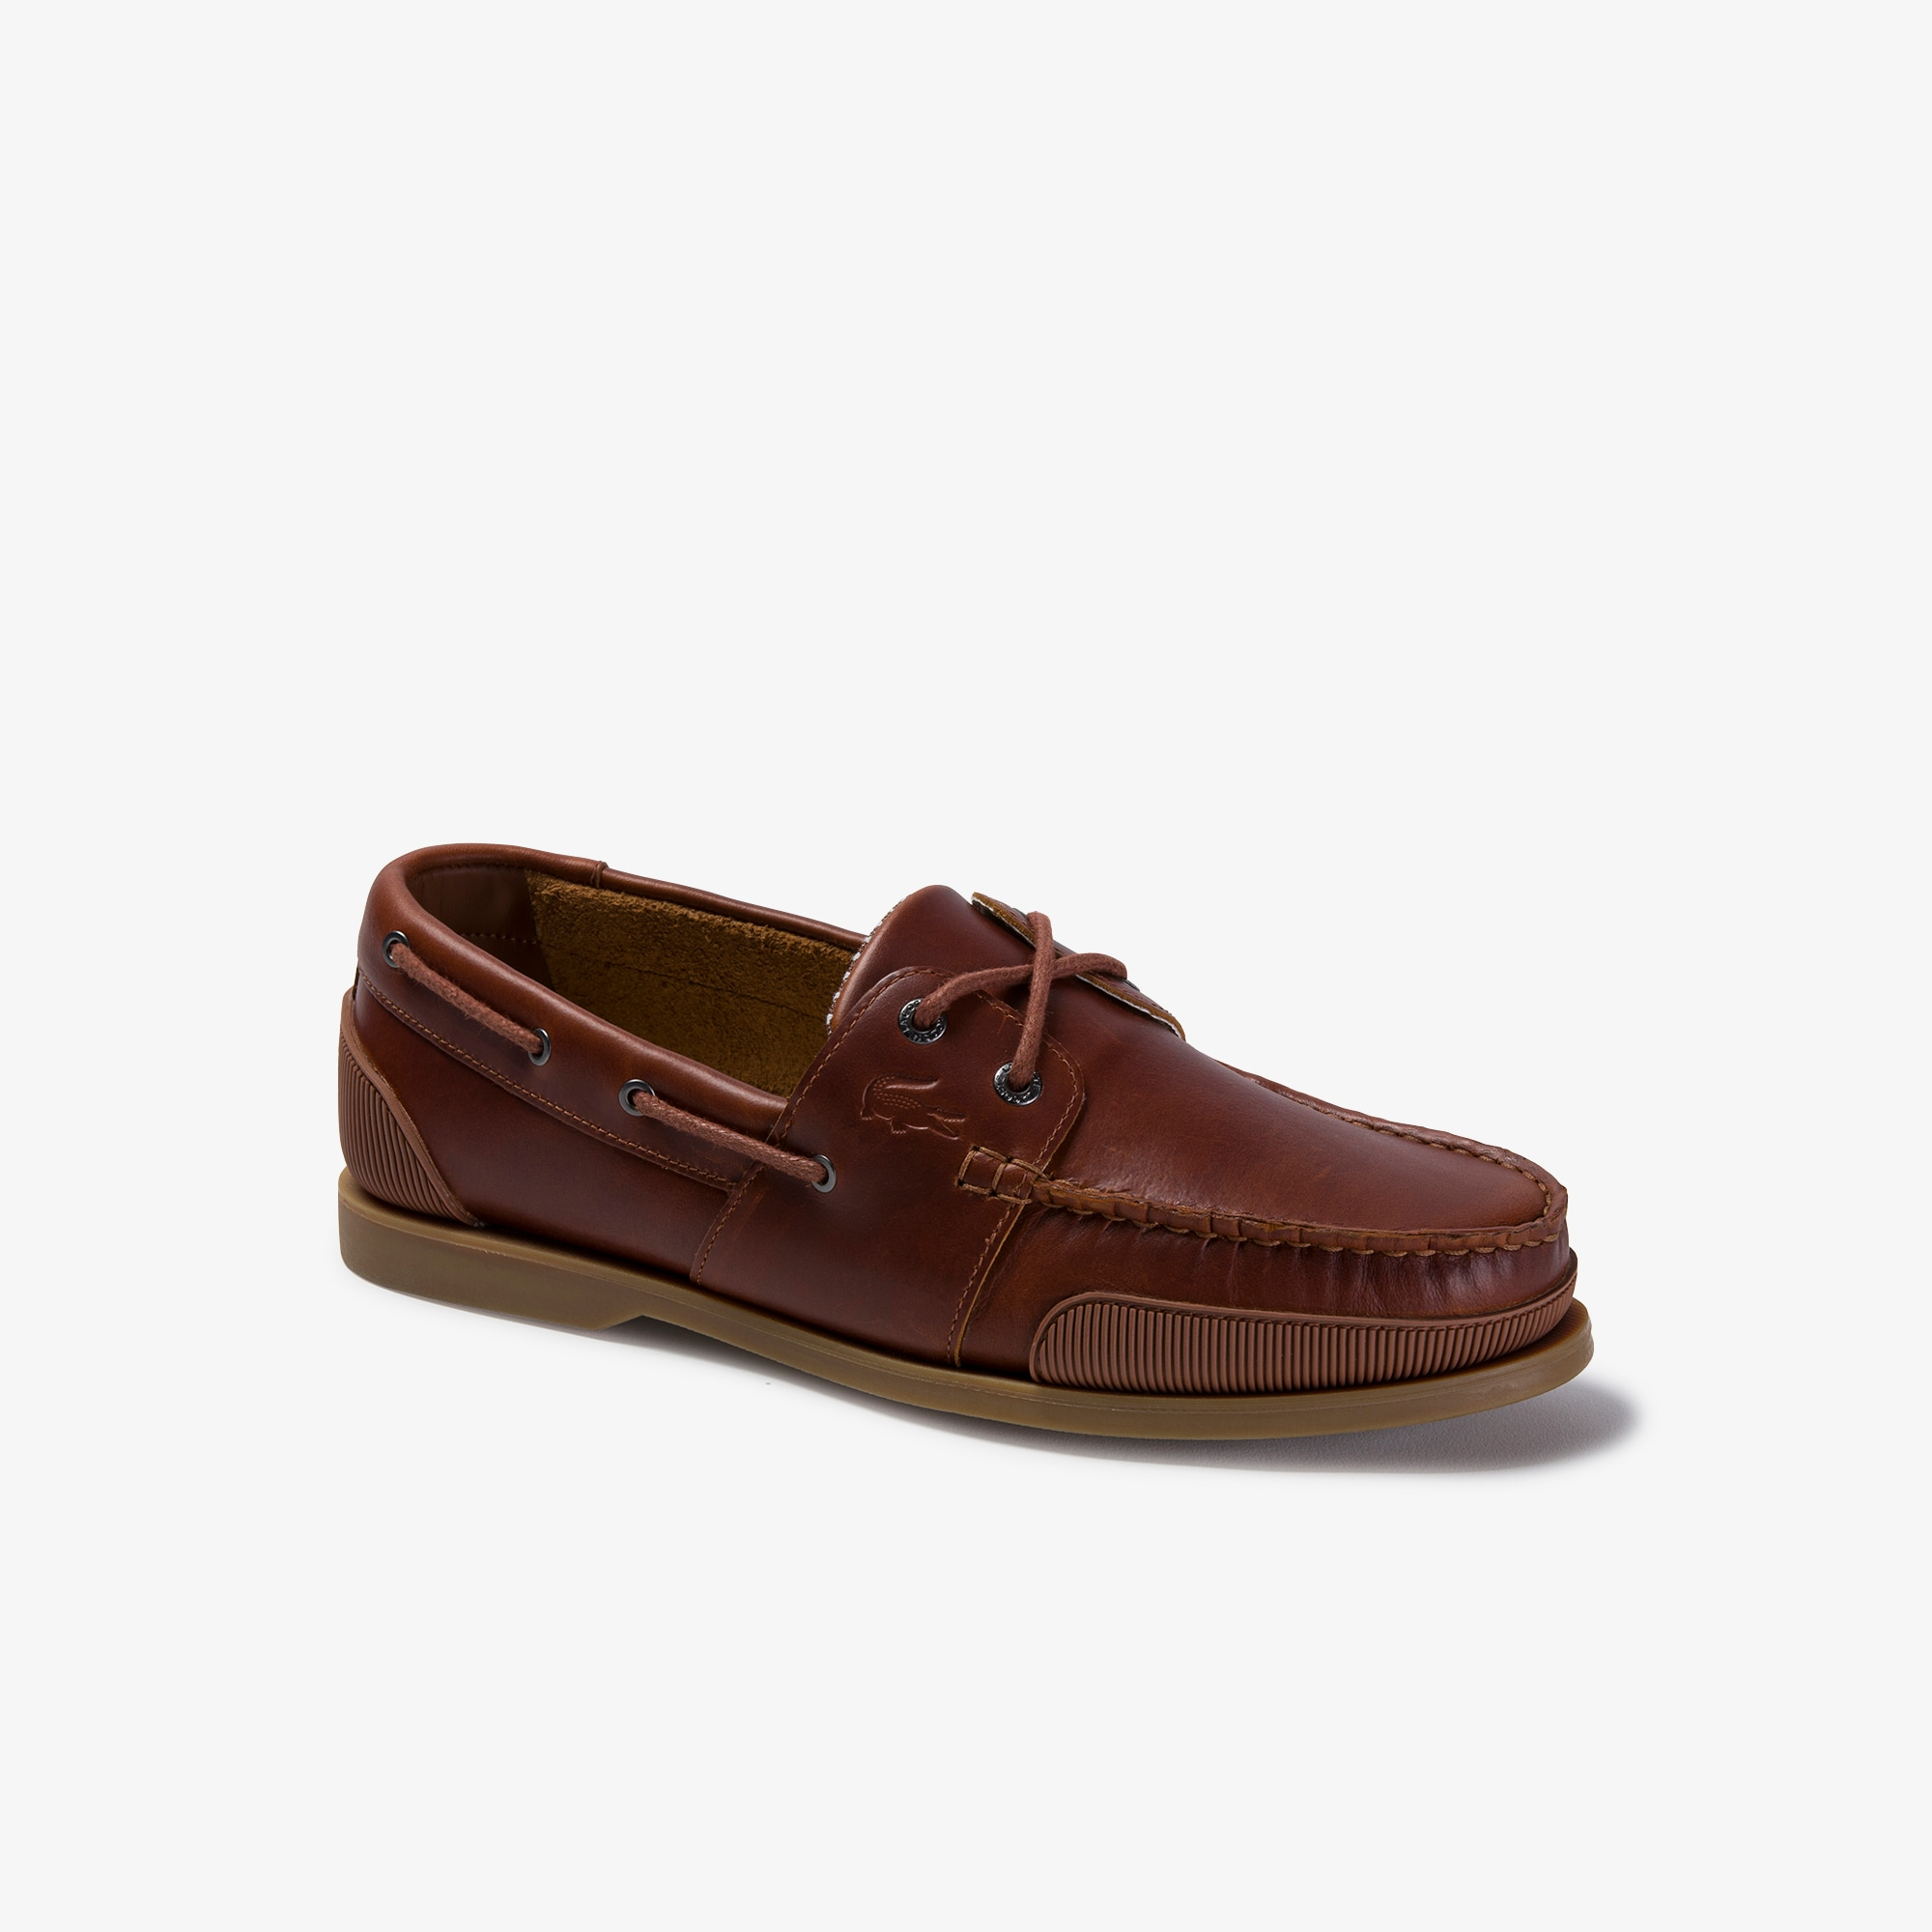 Nautic Soft Leather Boat Shoes | LACOSTE